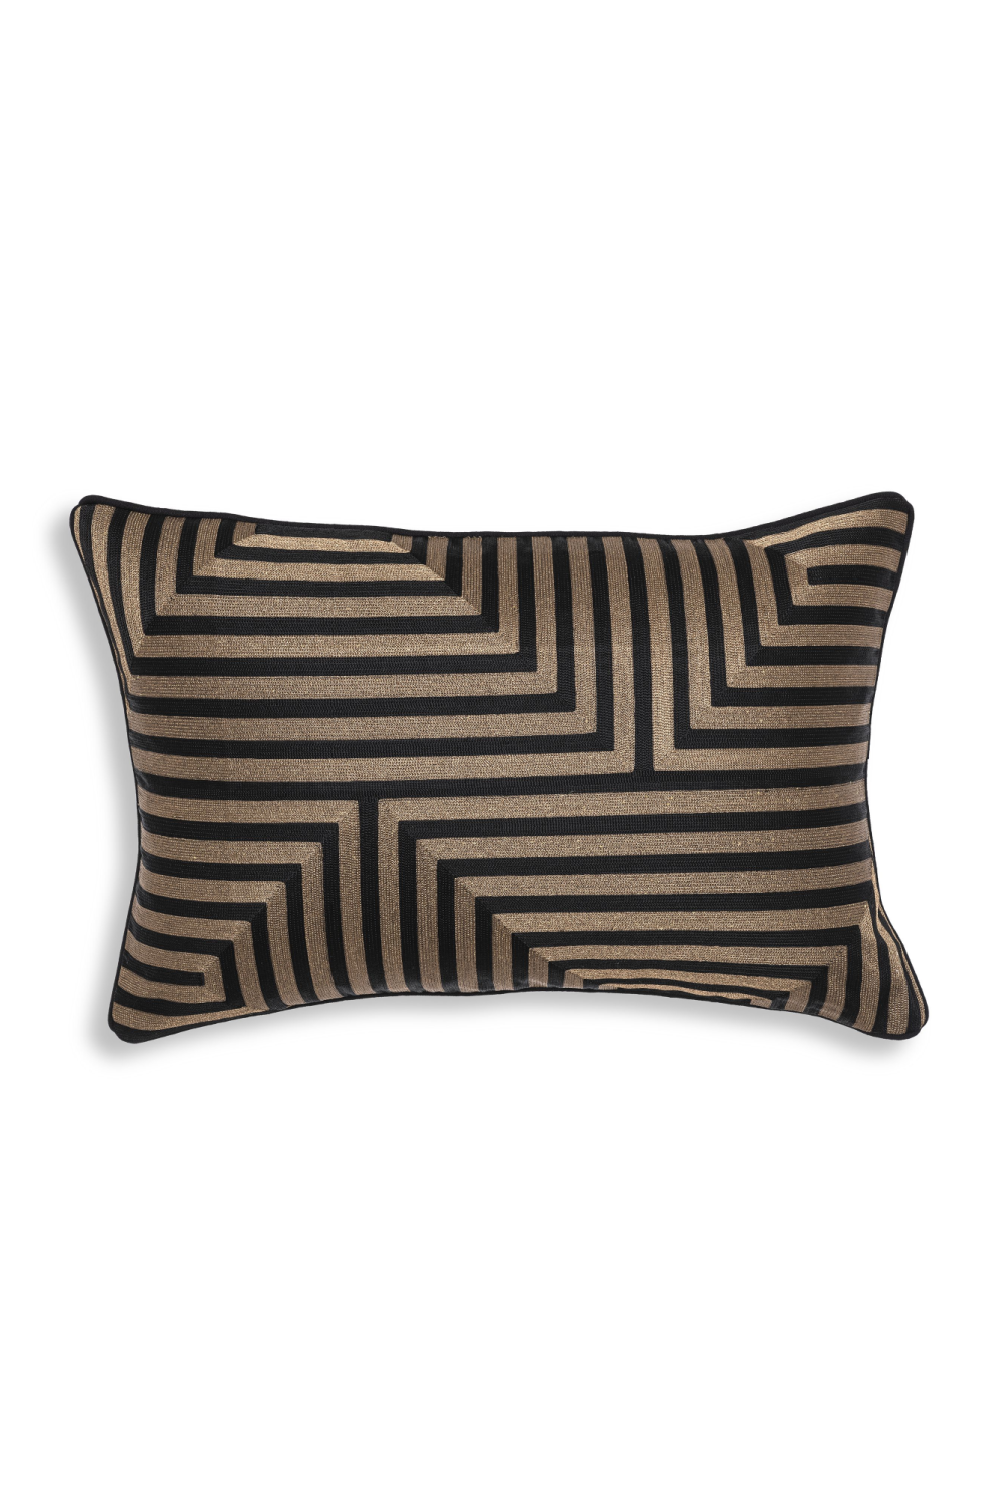 Rectangular Pillow | Eichholtz Spray | #1 Eichholtz Retailer